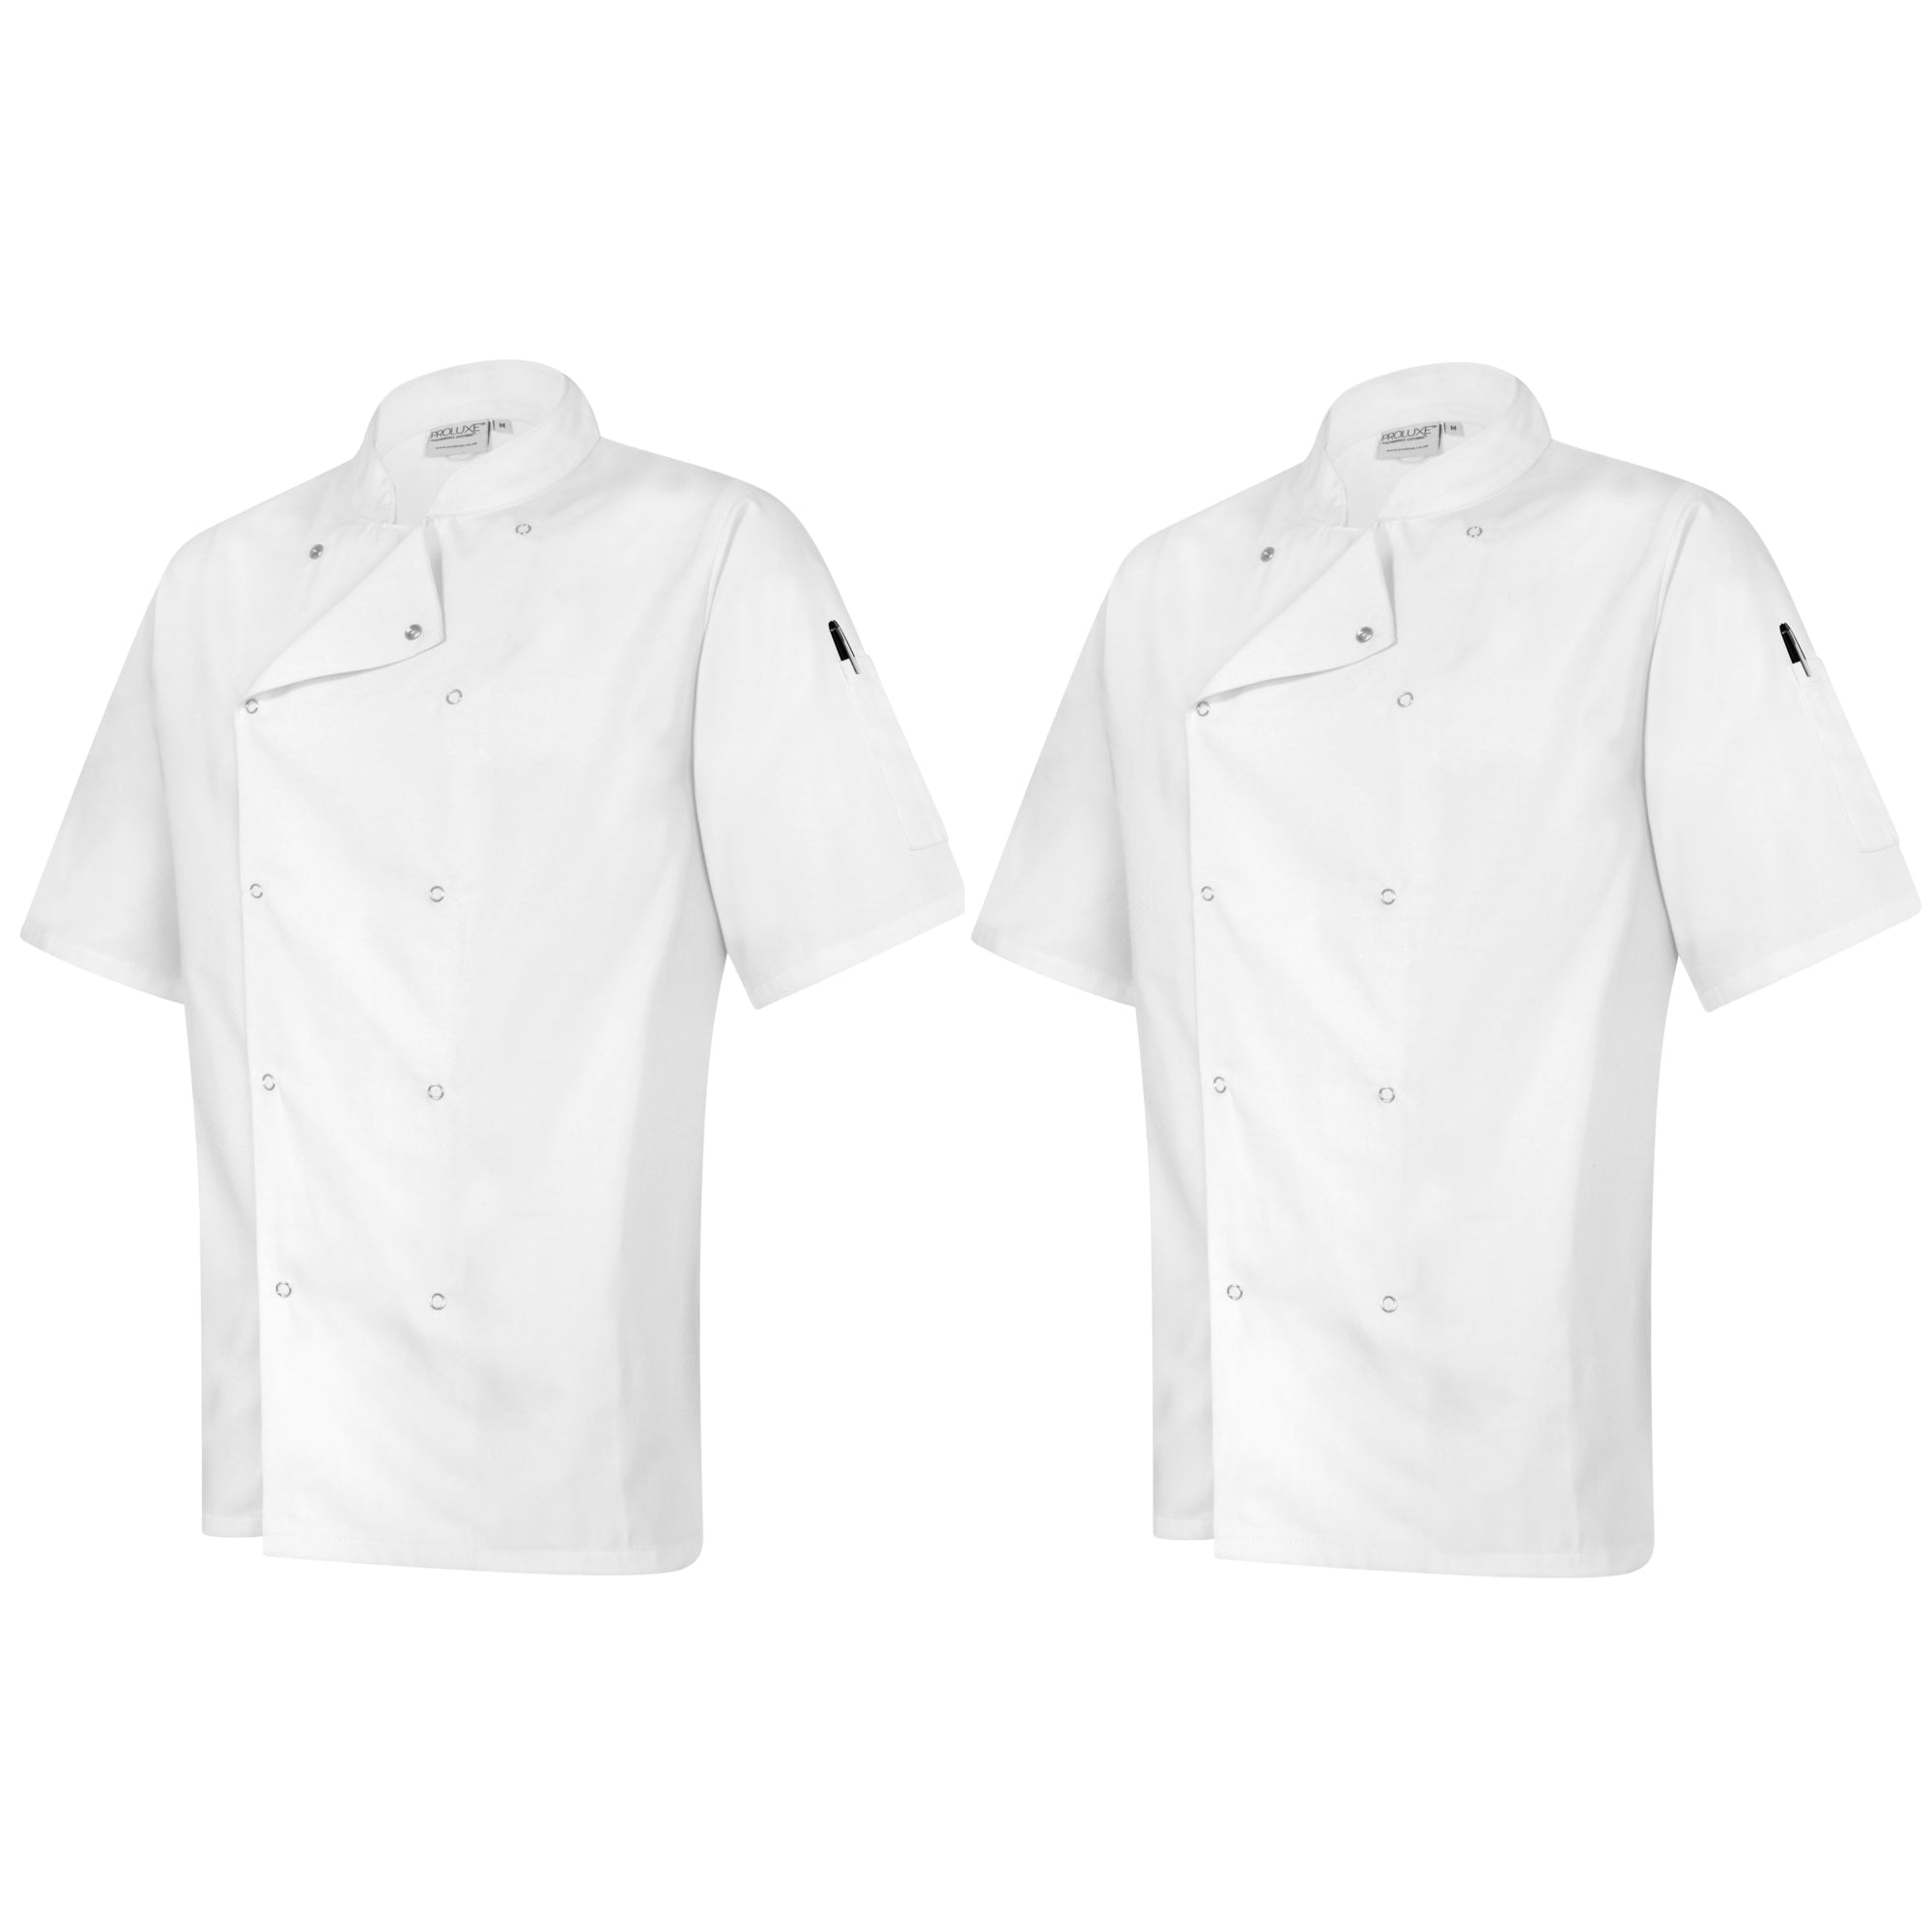 Twin Pack - Professional Chefs Jacket - Short Sleeve - White